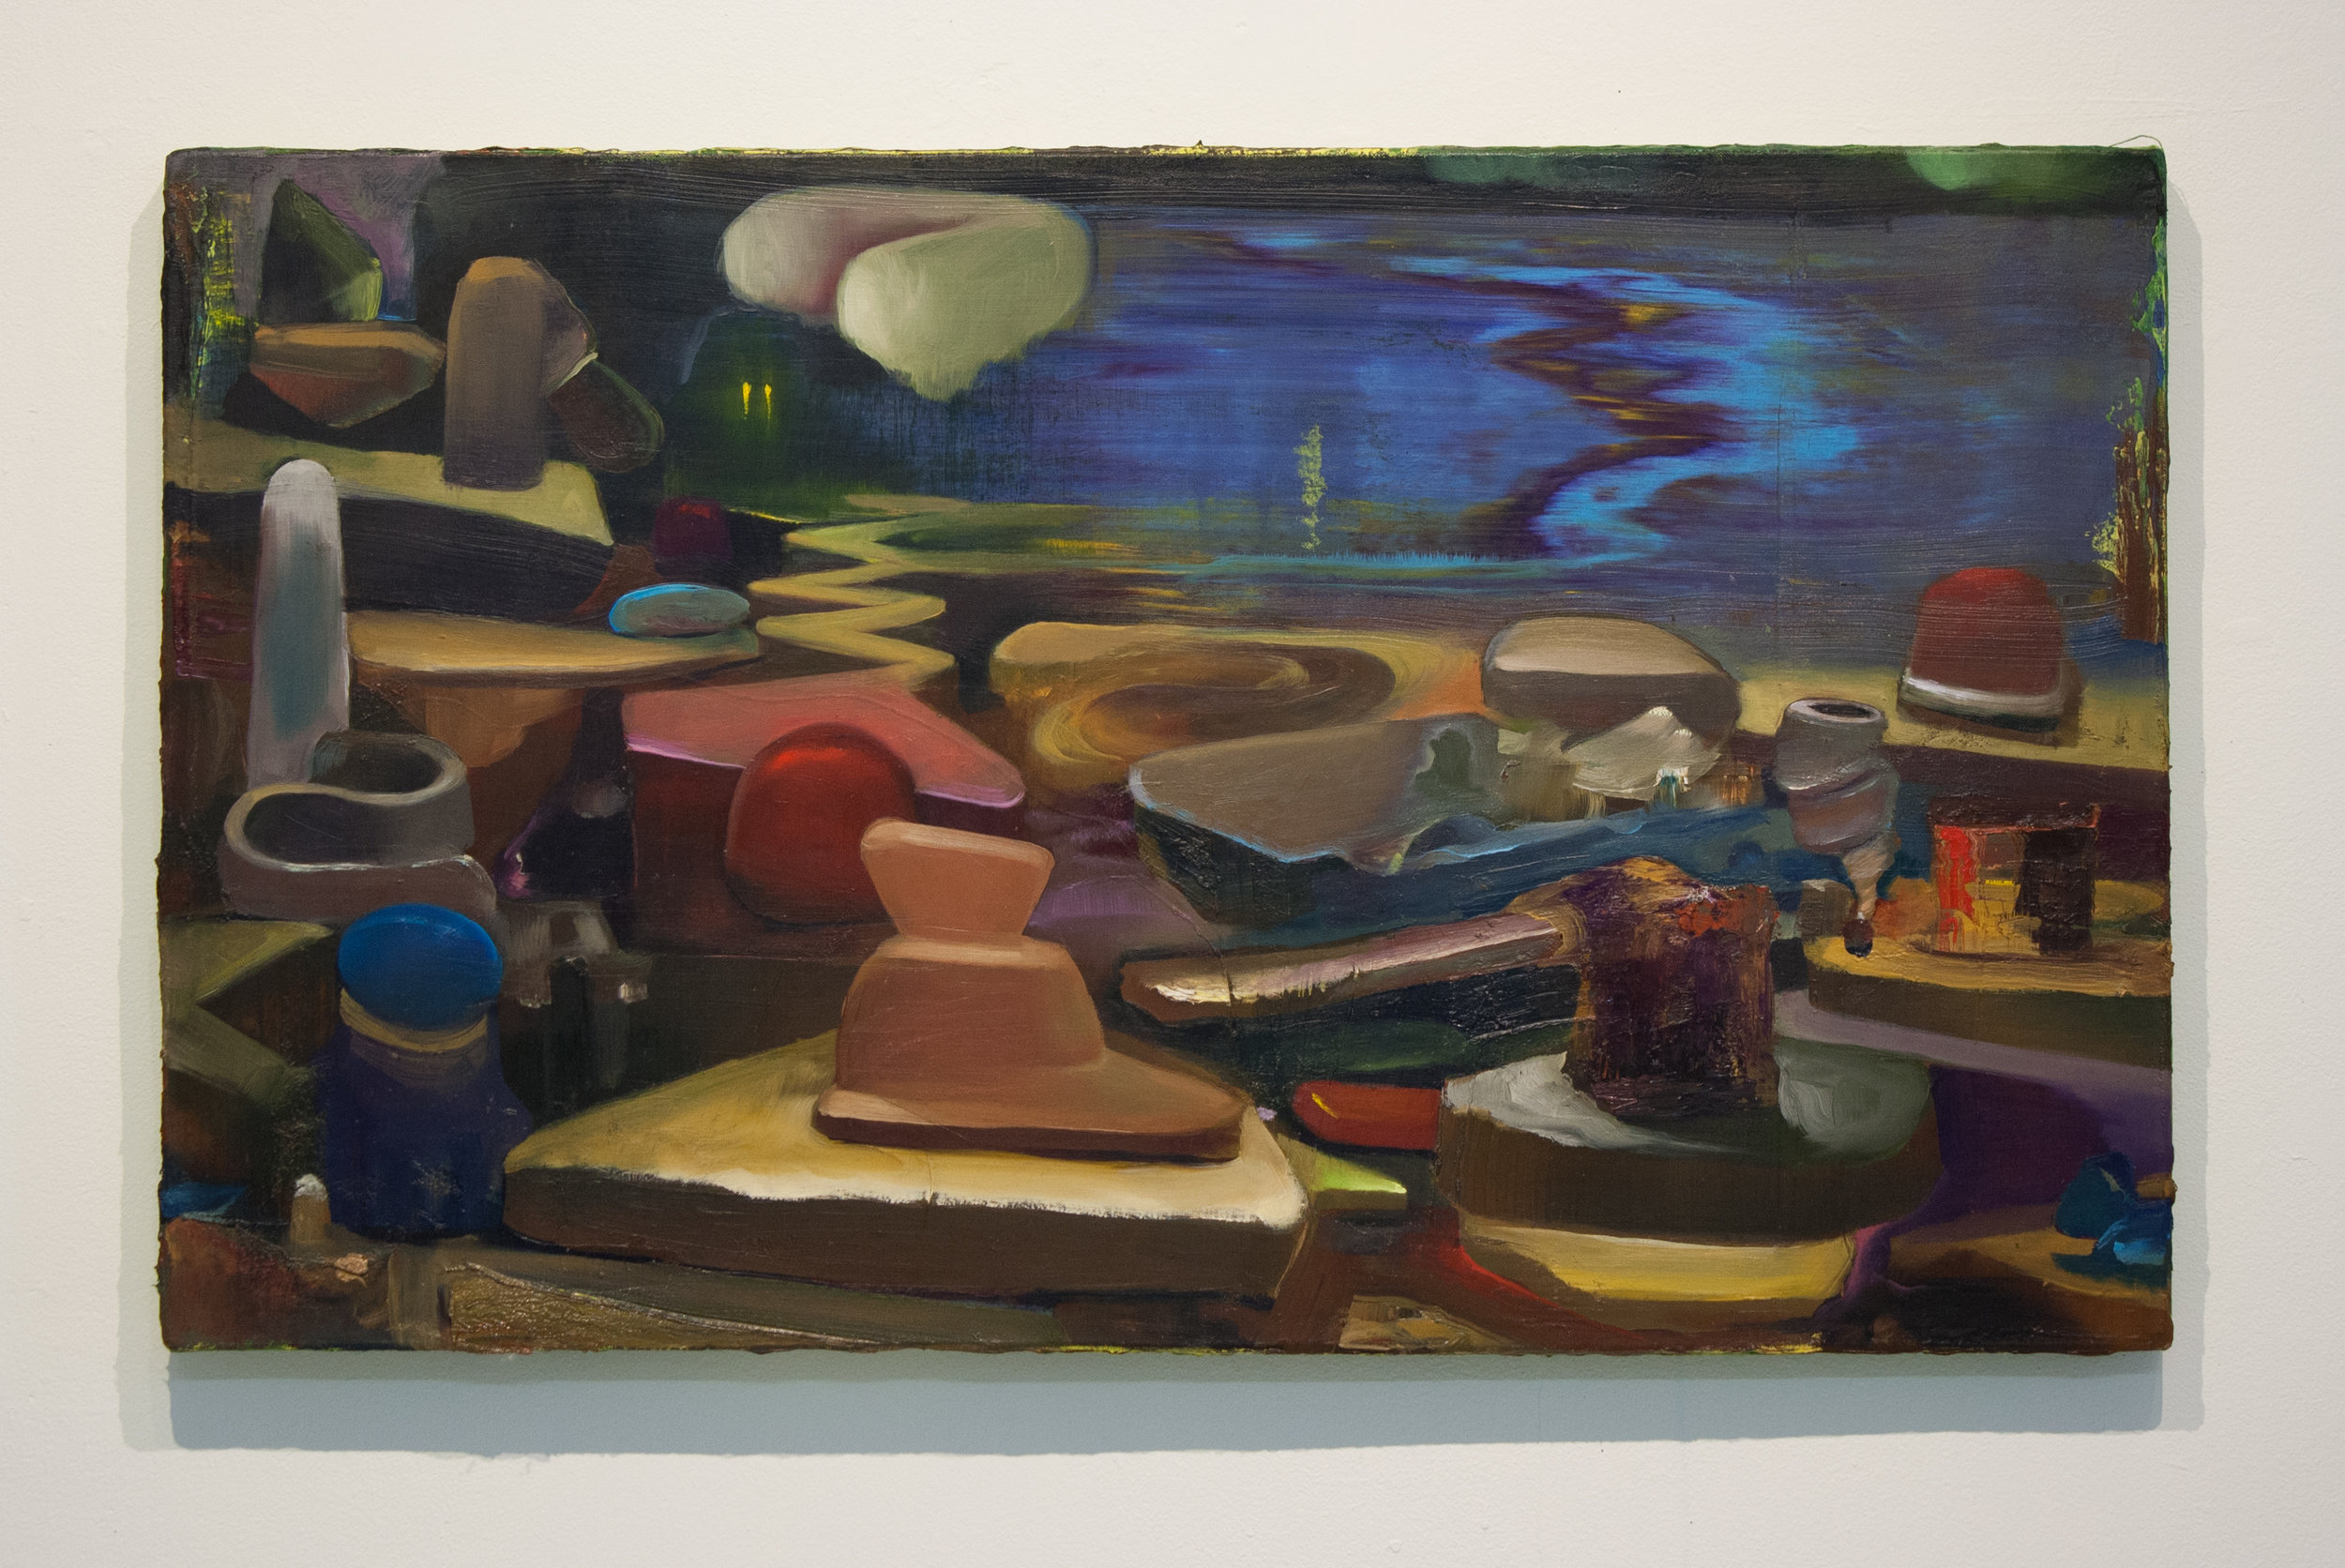 Briny Fete | 2017 | oil on canvas | 22.5 x 37.5 in.